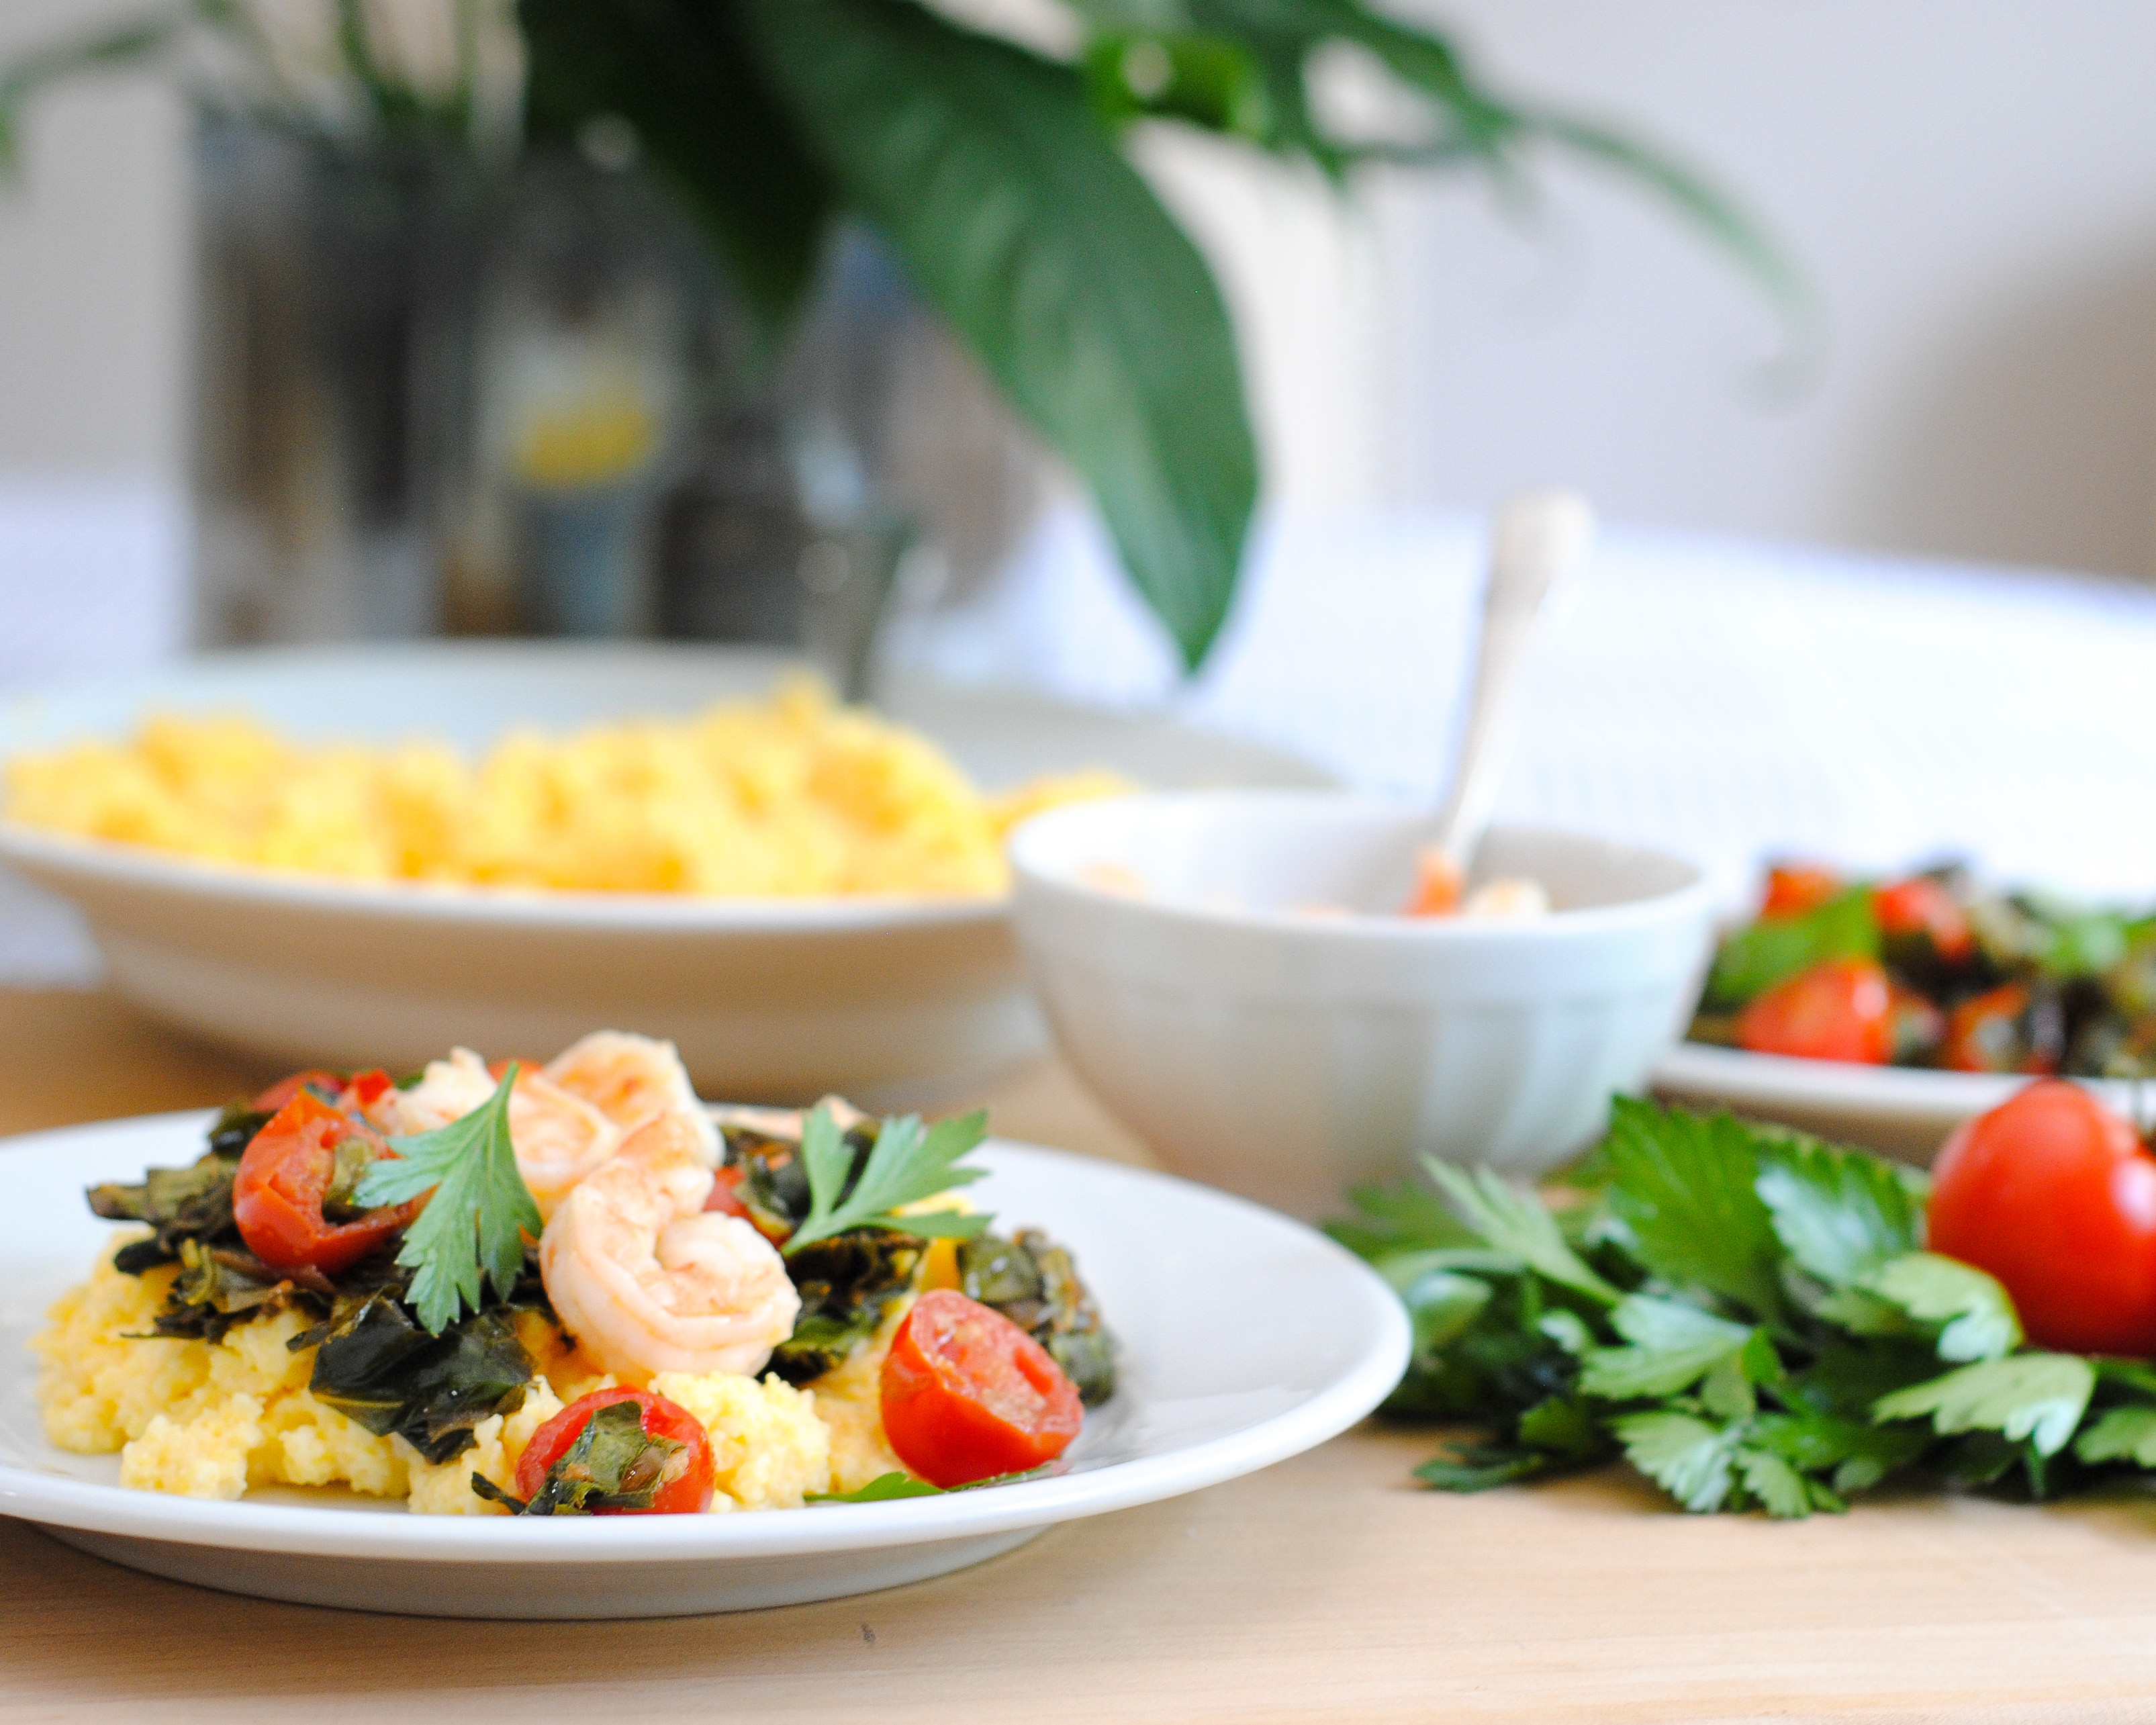 Shrimp And Grits Healthy  Healthy Shrimp and Grits with Collard Greens The